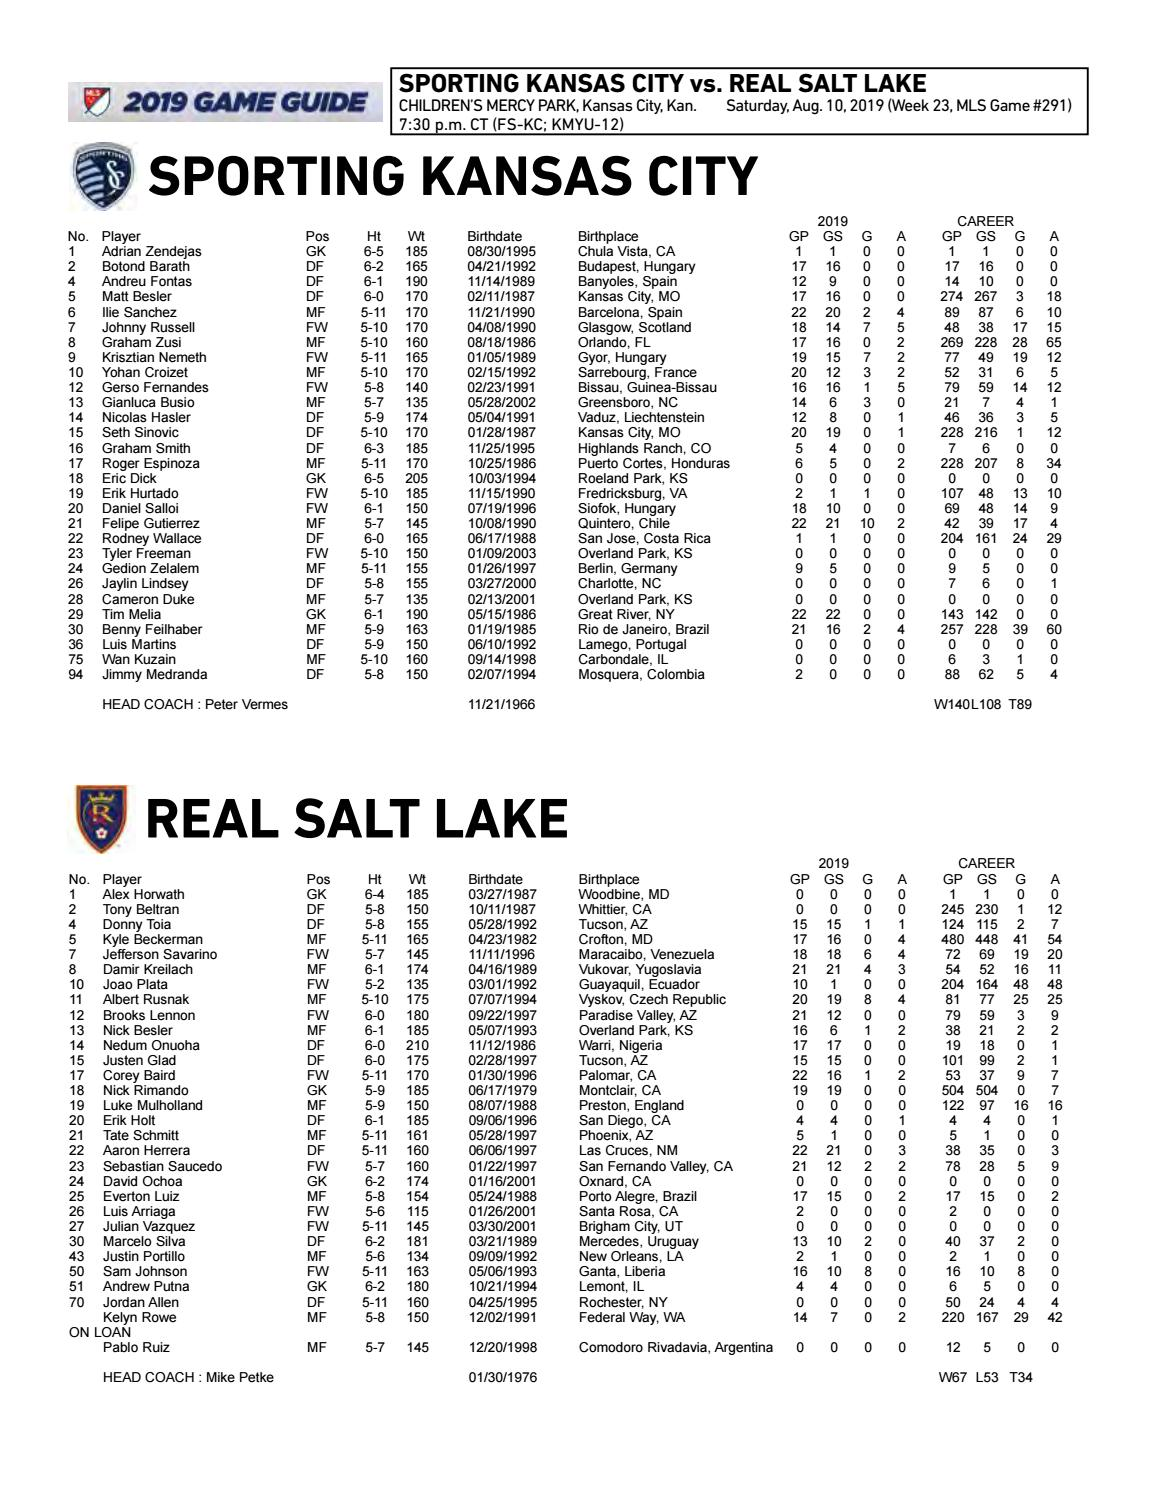 Match Notes: Sporting vs  Real Salt Lake | Aug  10, 2019 by